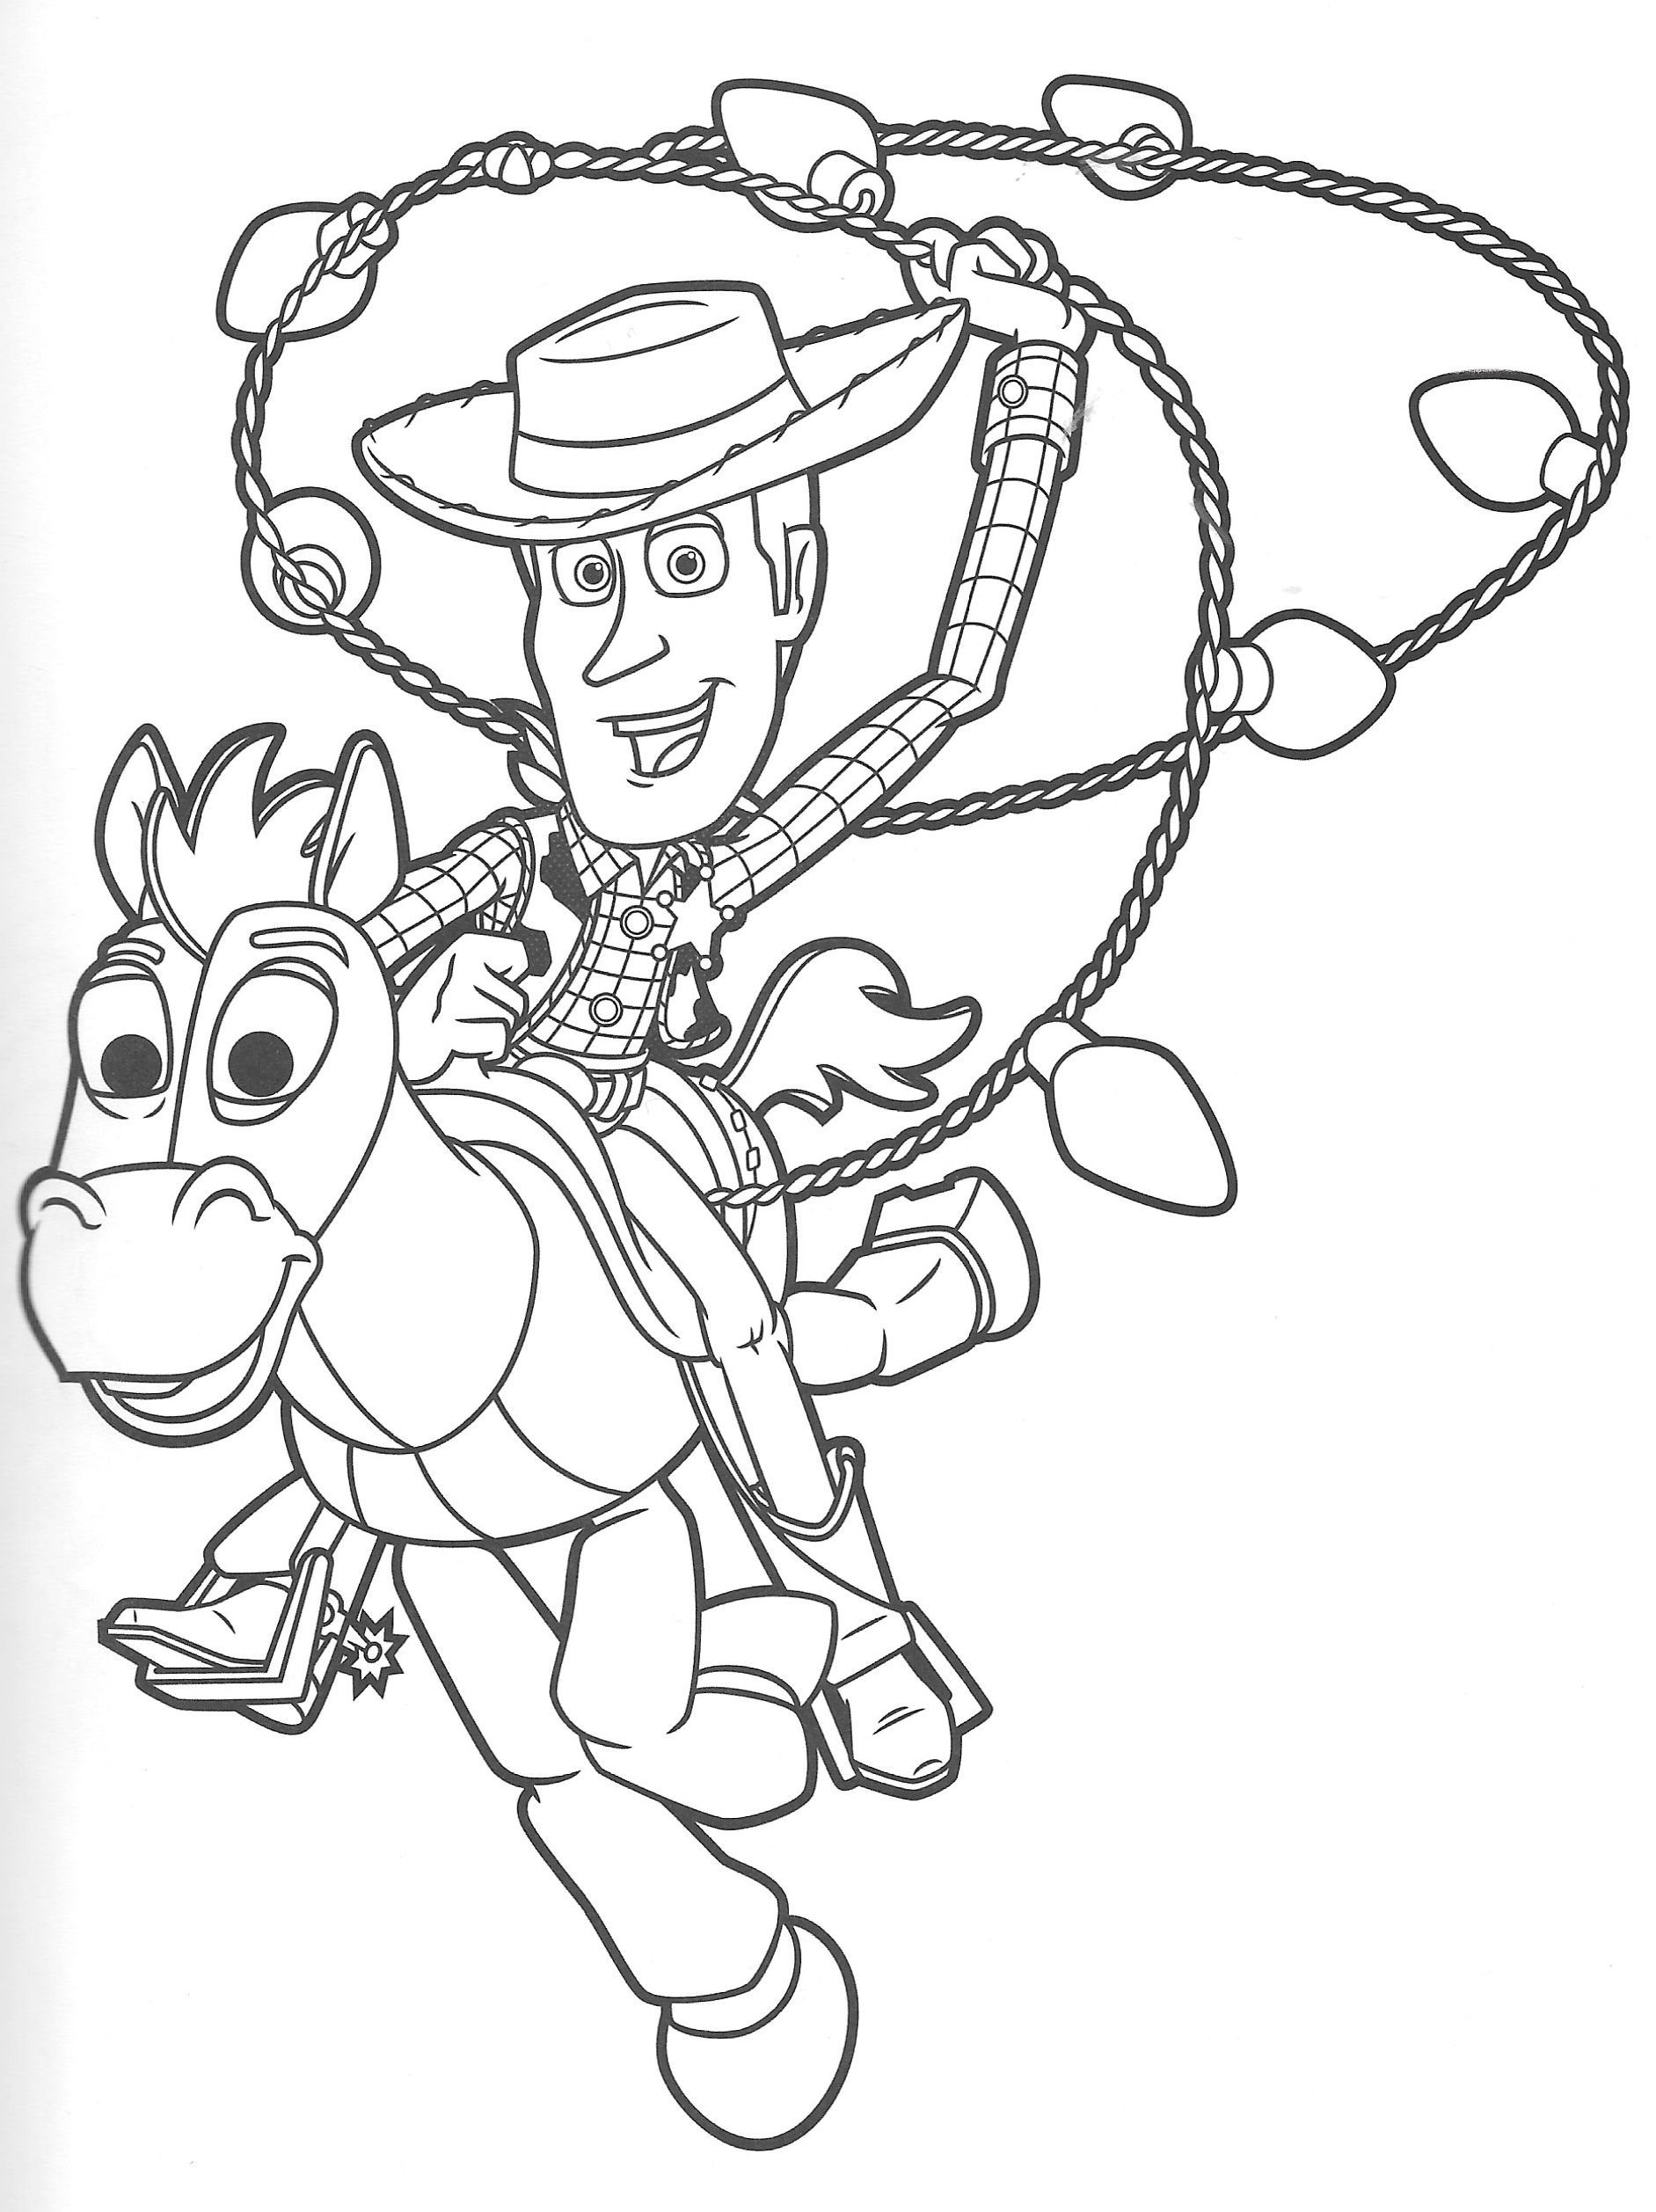 Pin By Atayvia Gutierrez On Disney Toy Story Coloring Pages Disney Coloring Pages Cartoon Coloring Pages